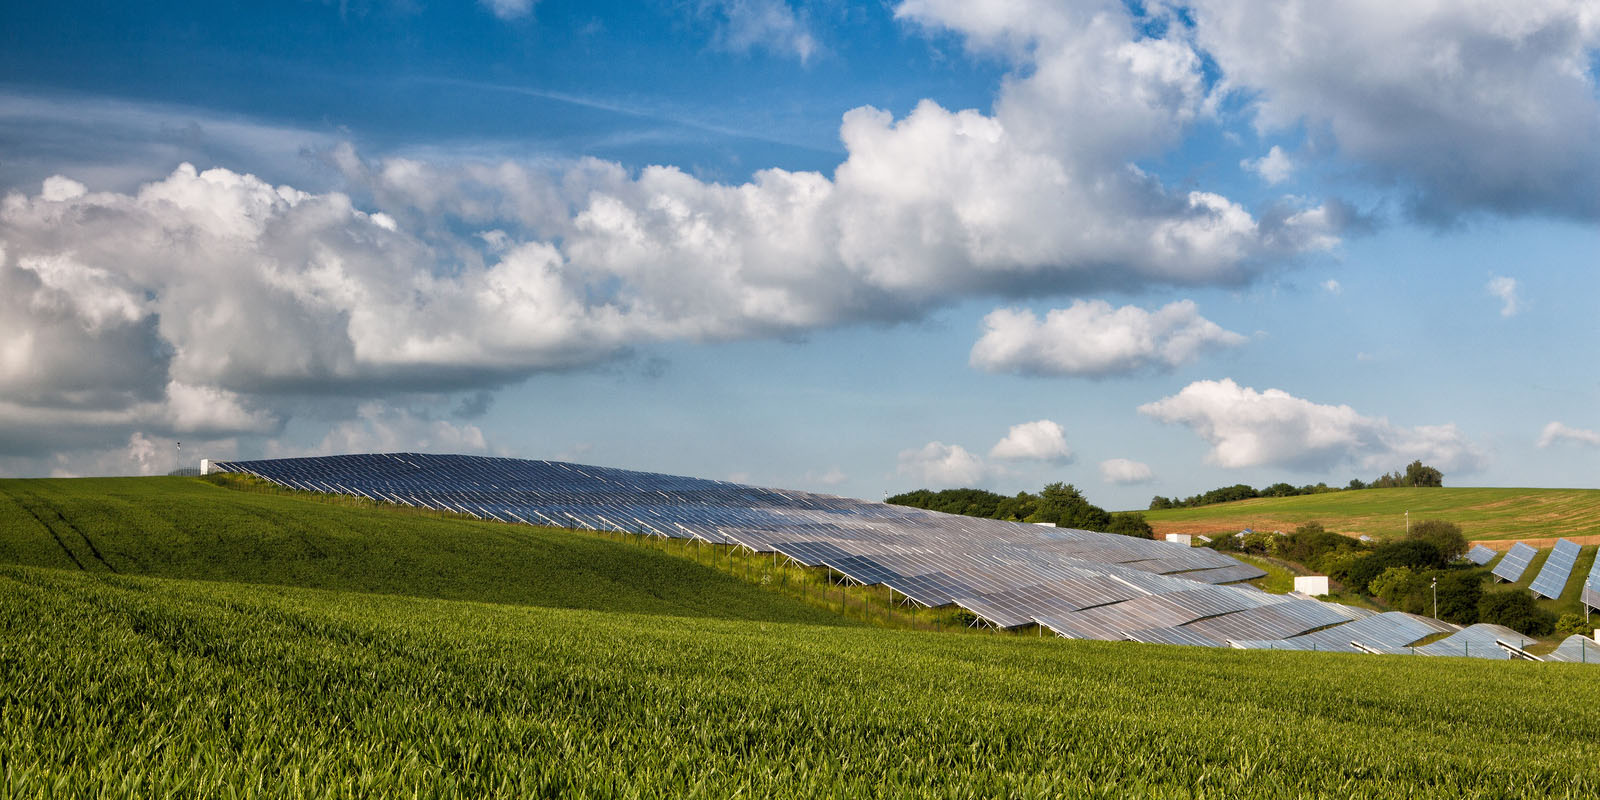 COUNCILMAN KACH PROPOSES MORATORIUM ON COMMERCIAL SOLAR FARMS TO PRESERVE BALTIMORE COUNTY'S RURAL HERITAGE